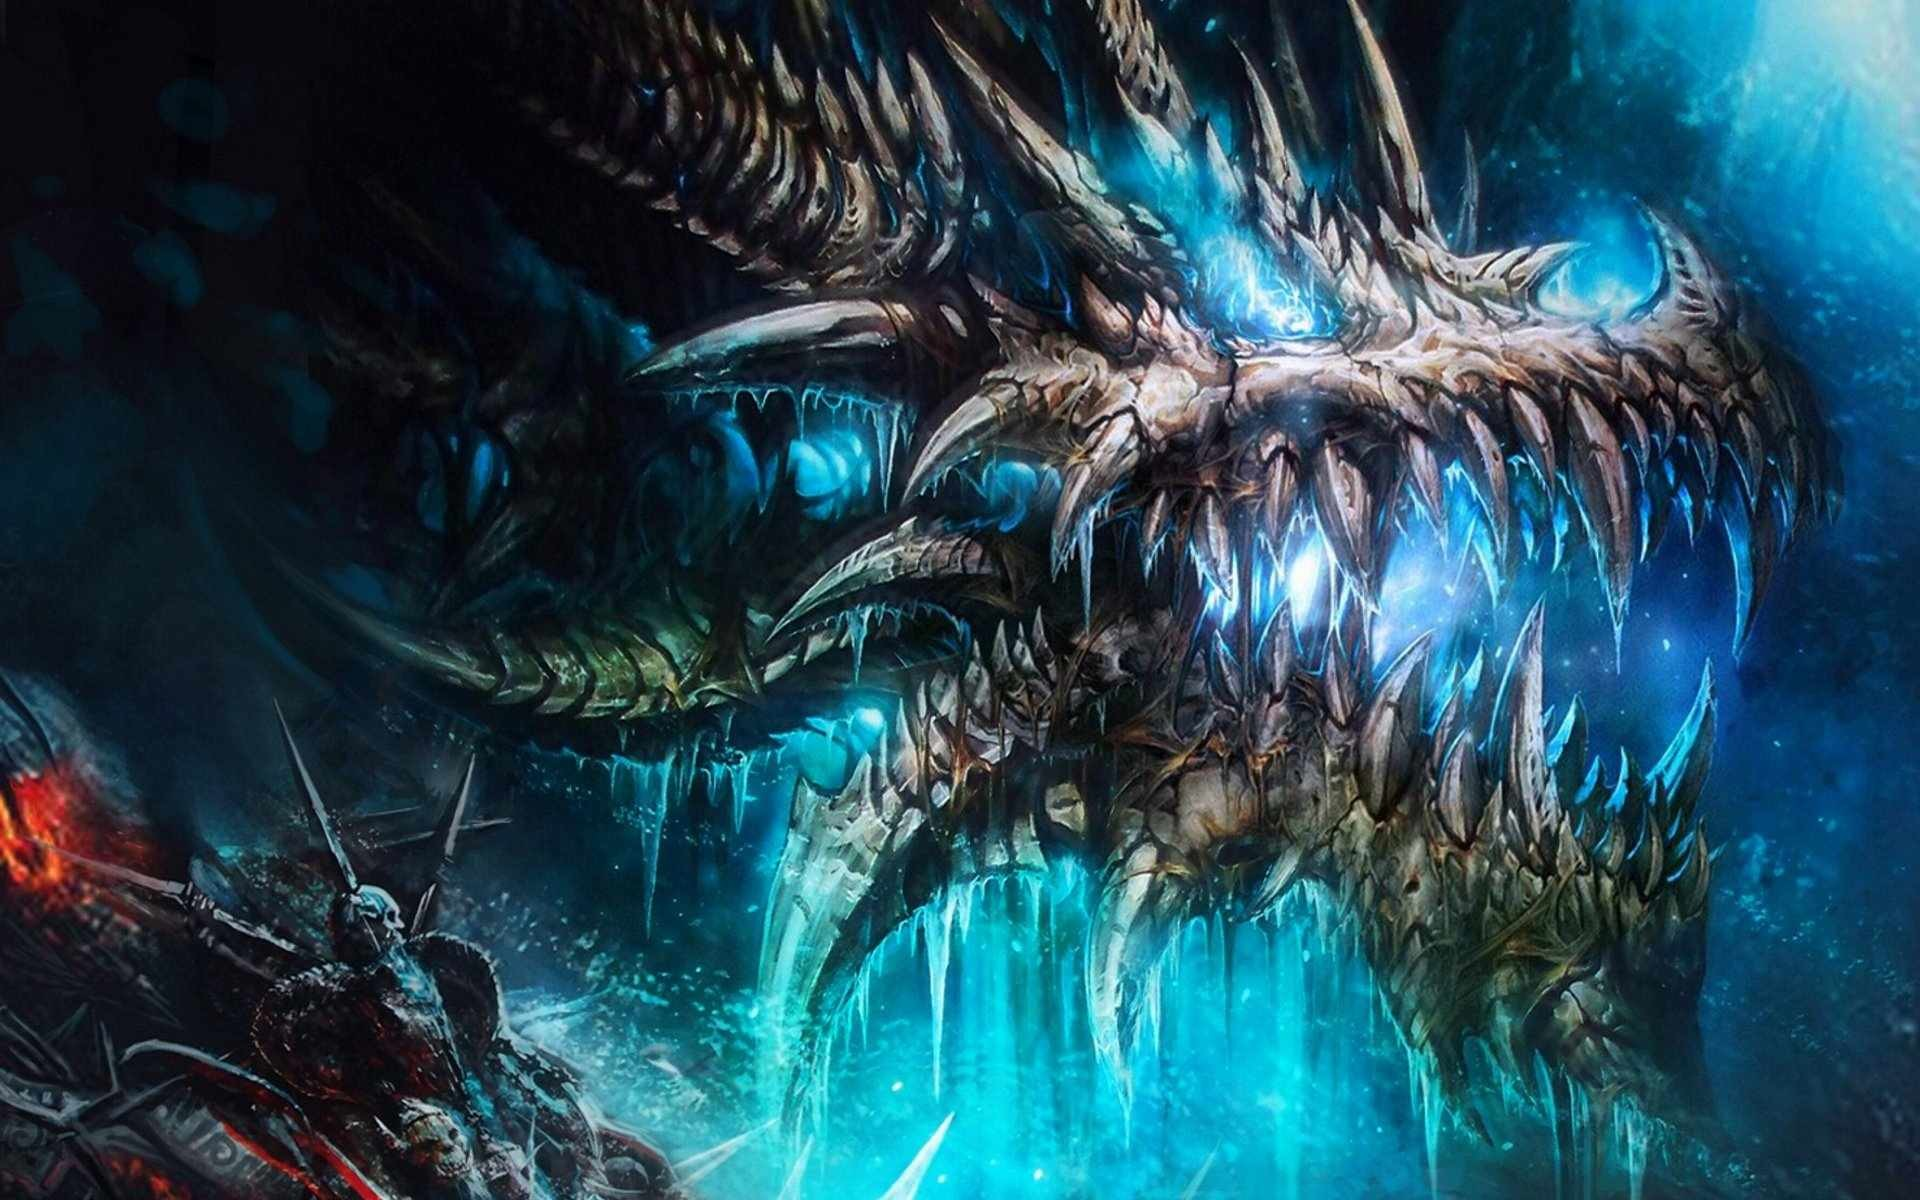 Cool dragon wallpapers wallpapertag - Awesome dragon pictures ...